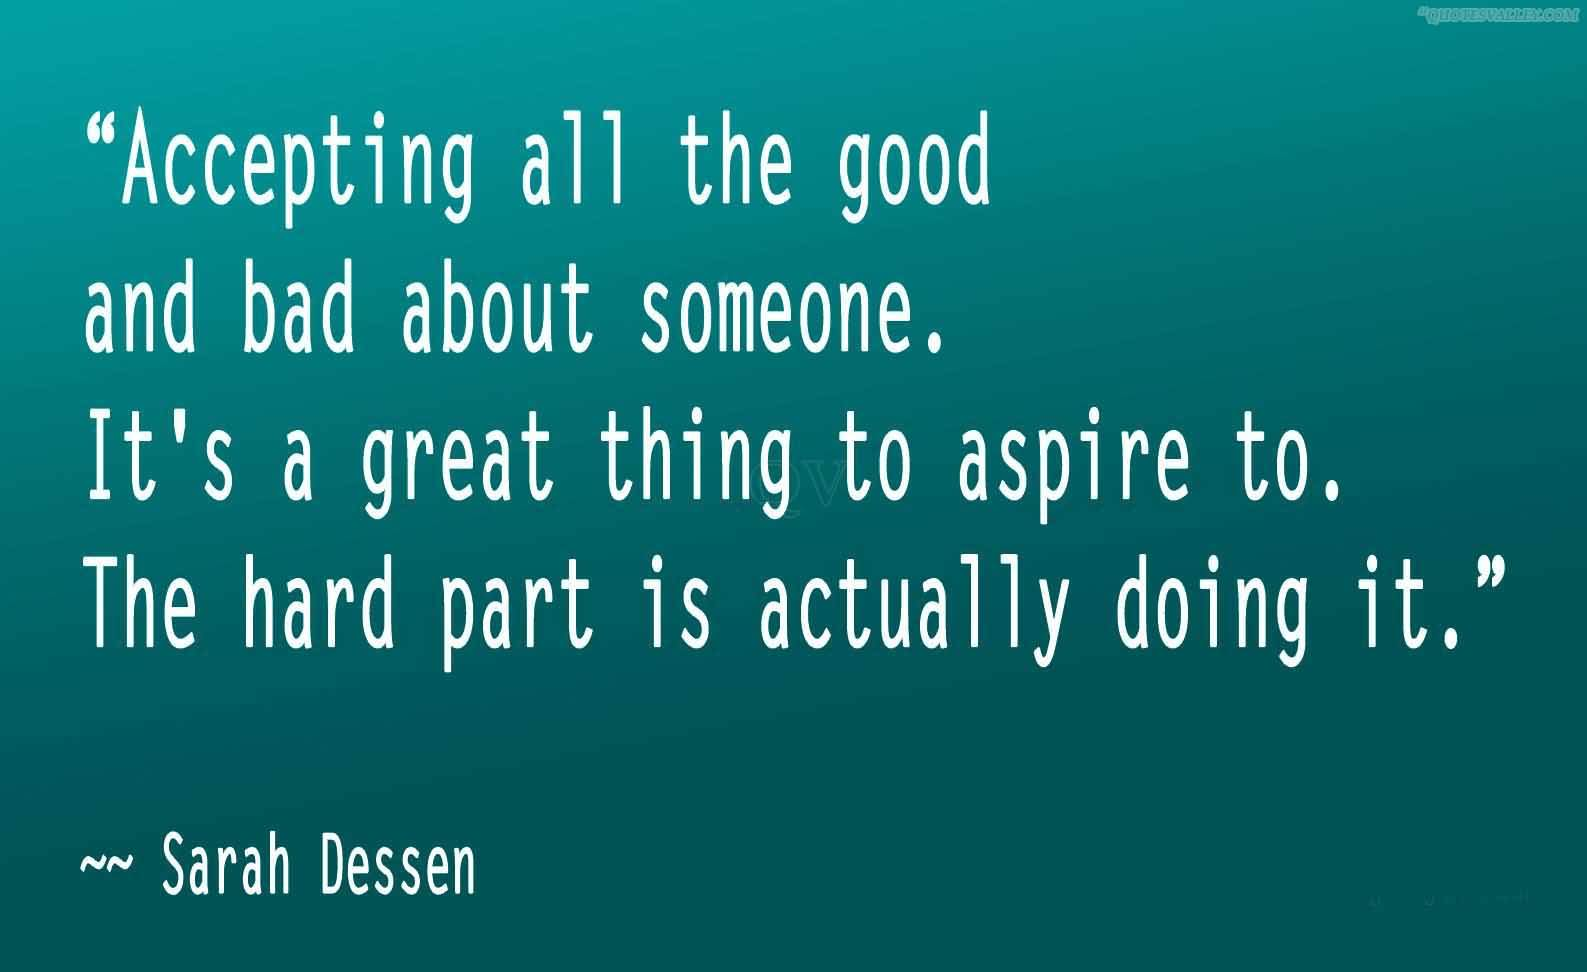 Accepting all the good and bad about someone. It's a great thing to aspire to. The hard part is actually doing it. Sarah Dessen